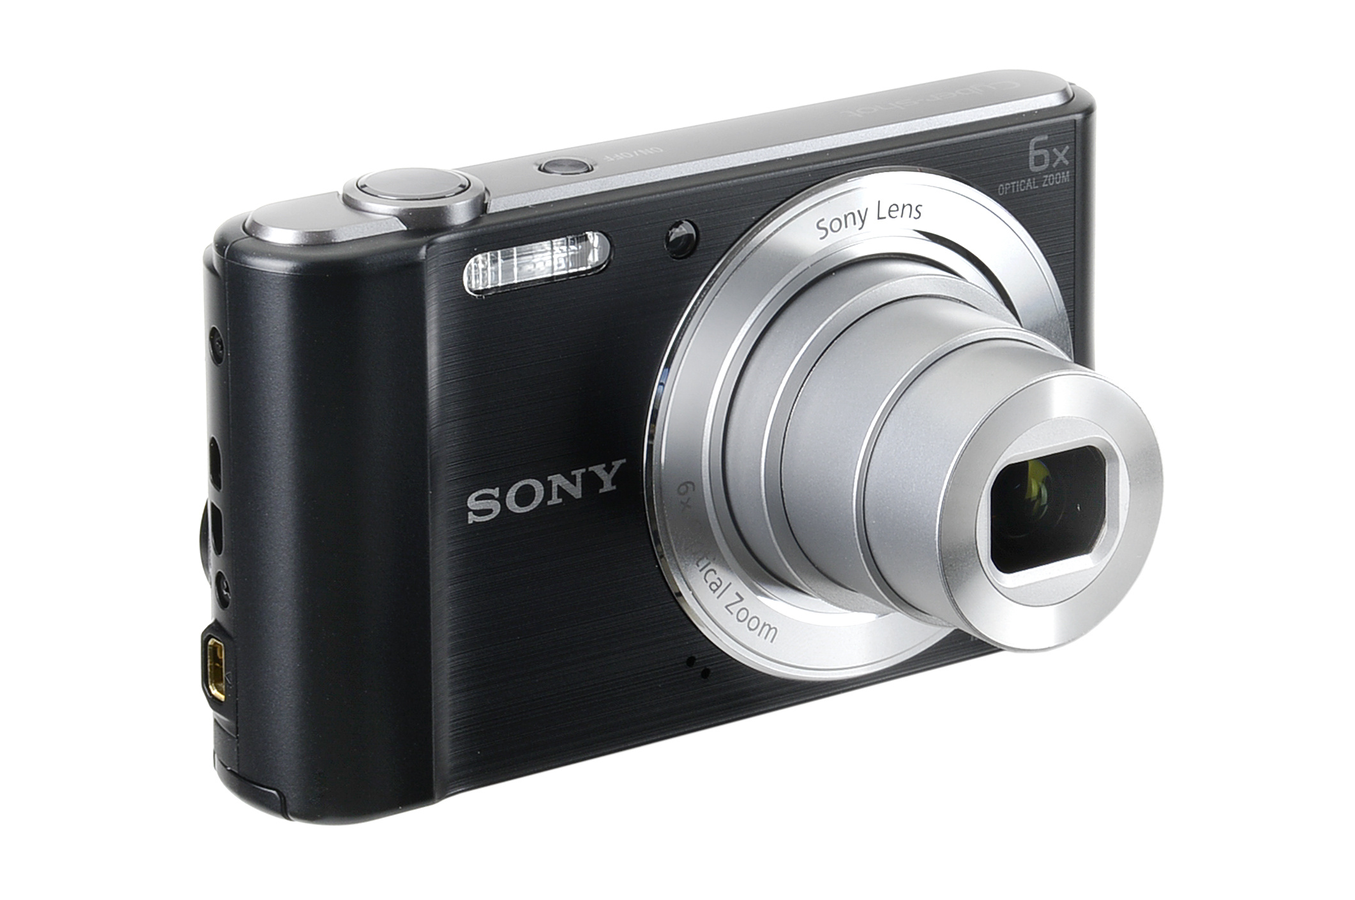 appareil photo compact sony dsc w810 noir 4036867 darty